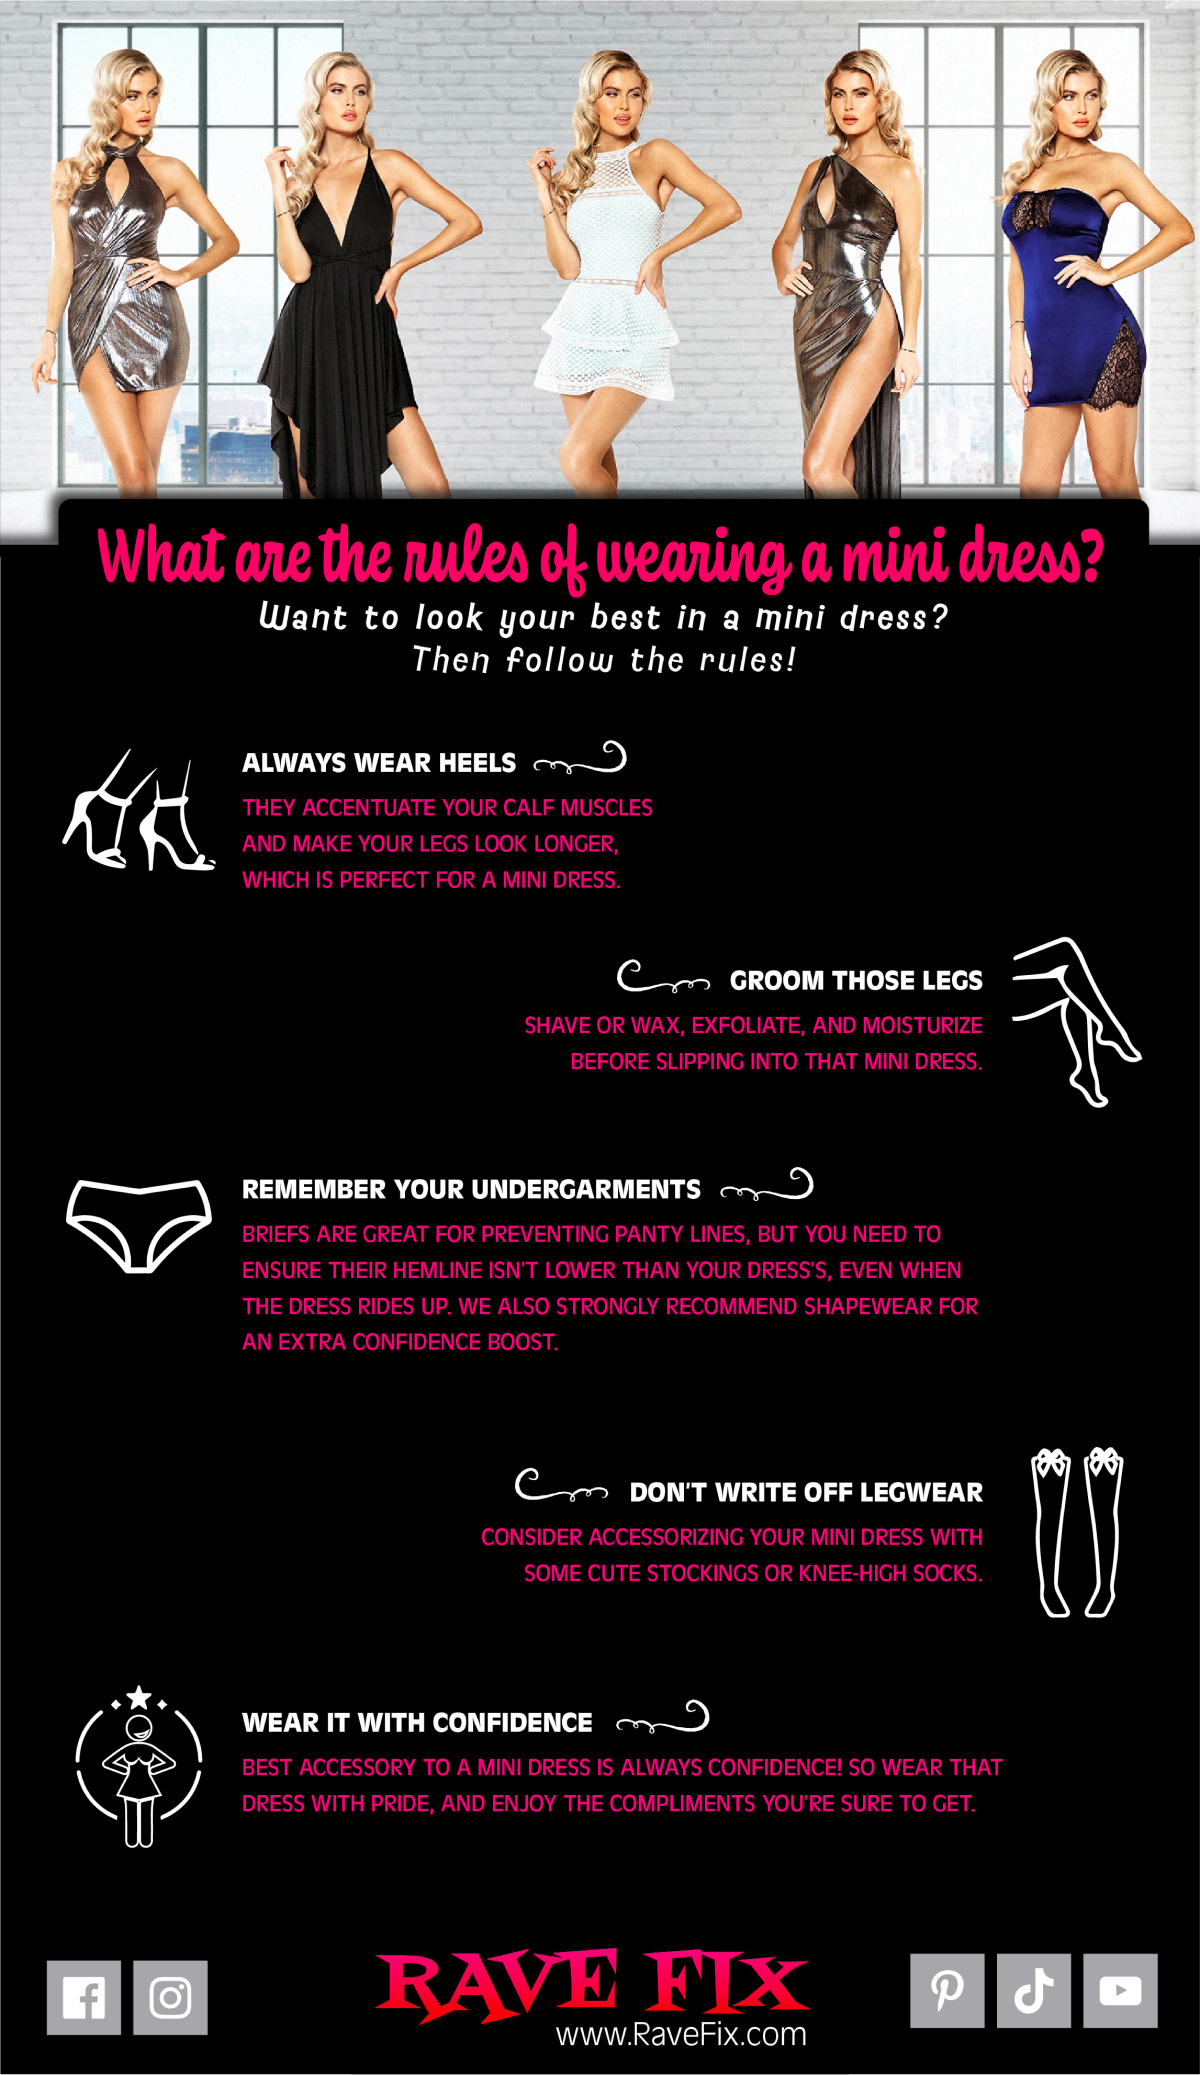 What Are the Rules of Wearing a Mini Dress?